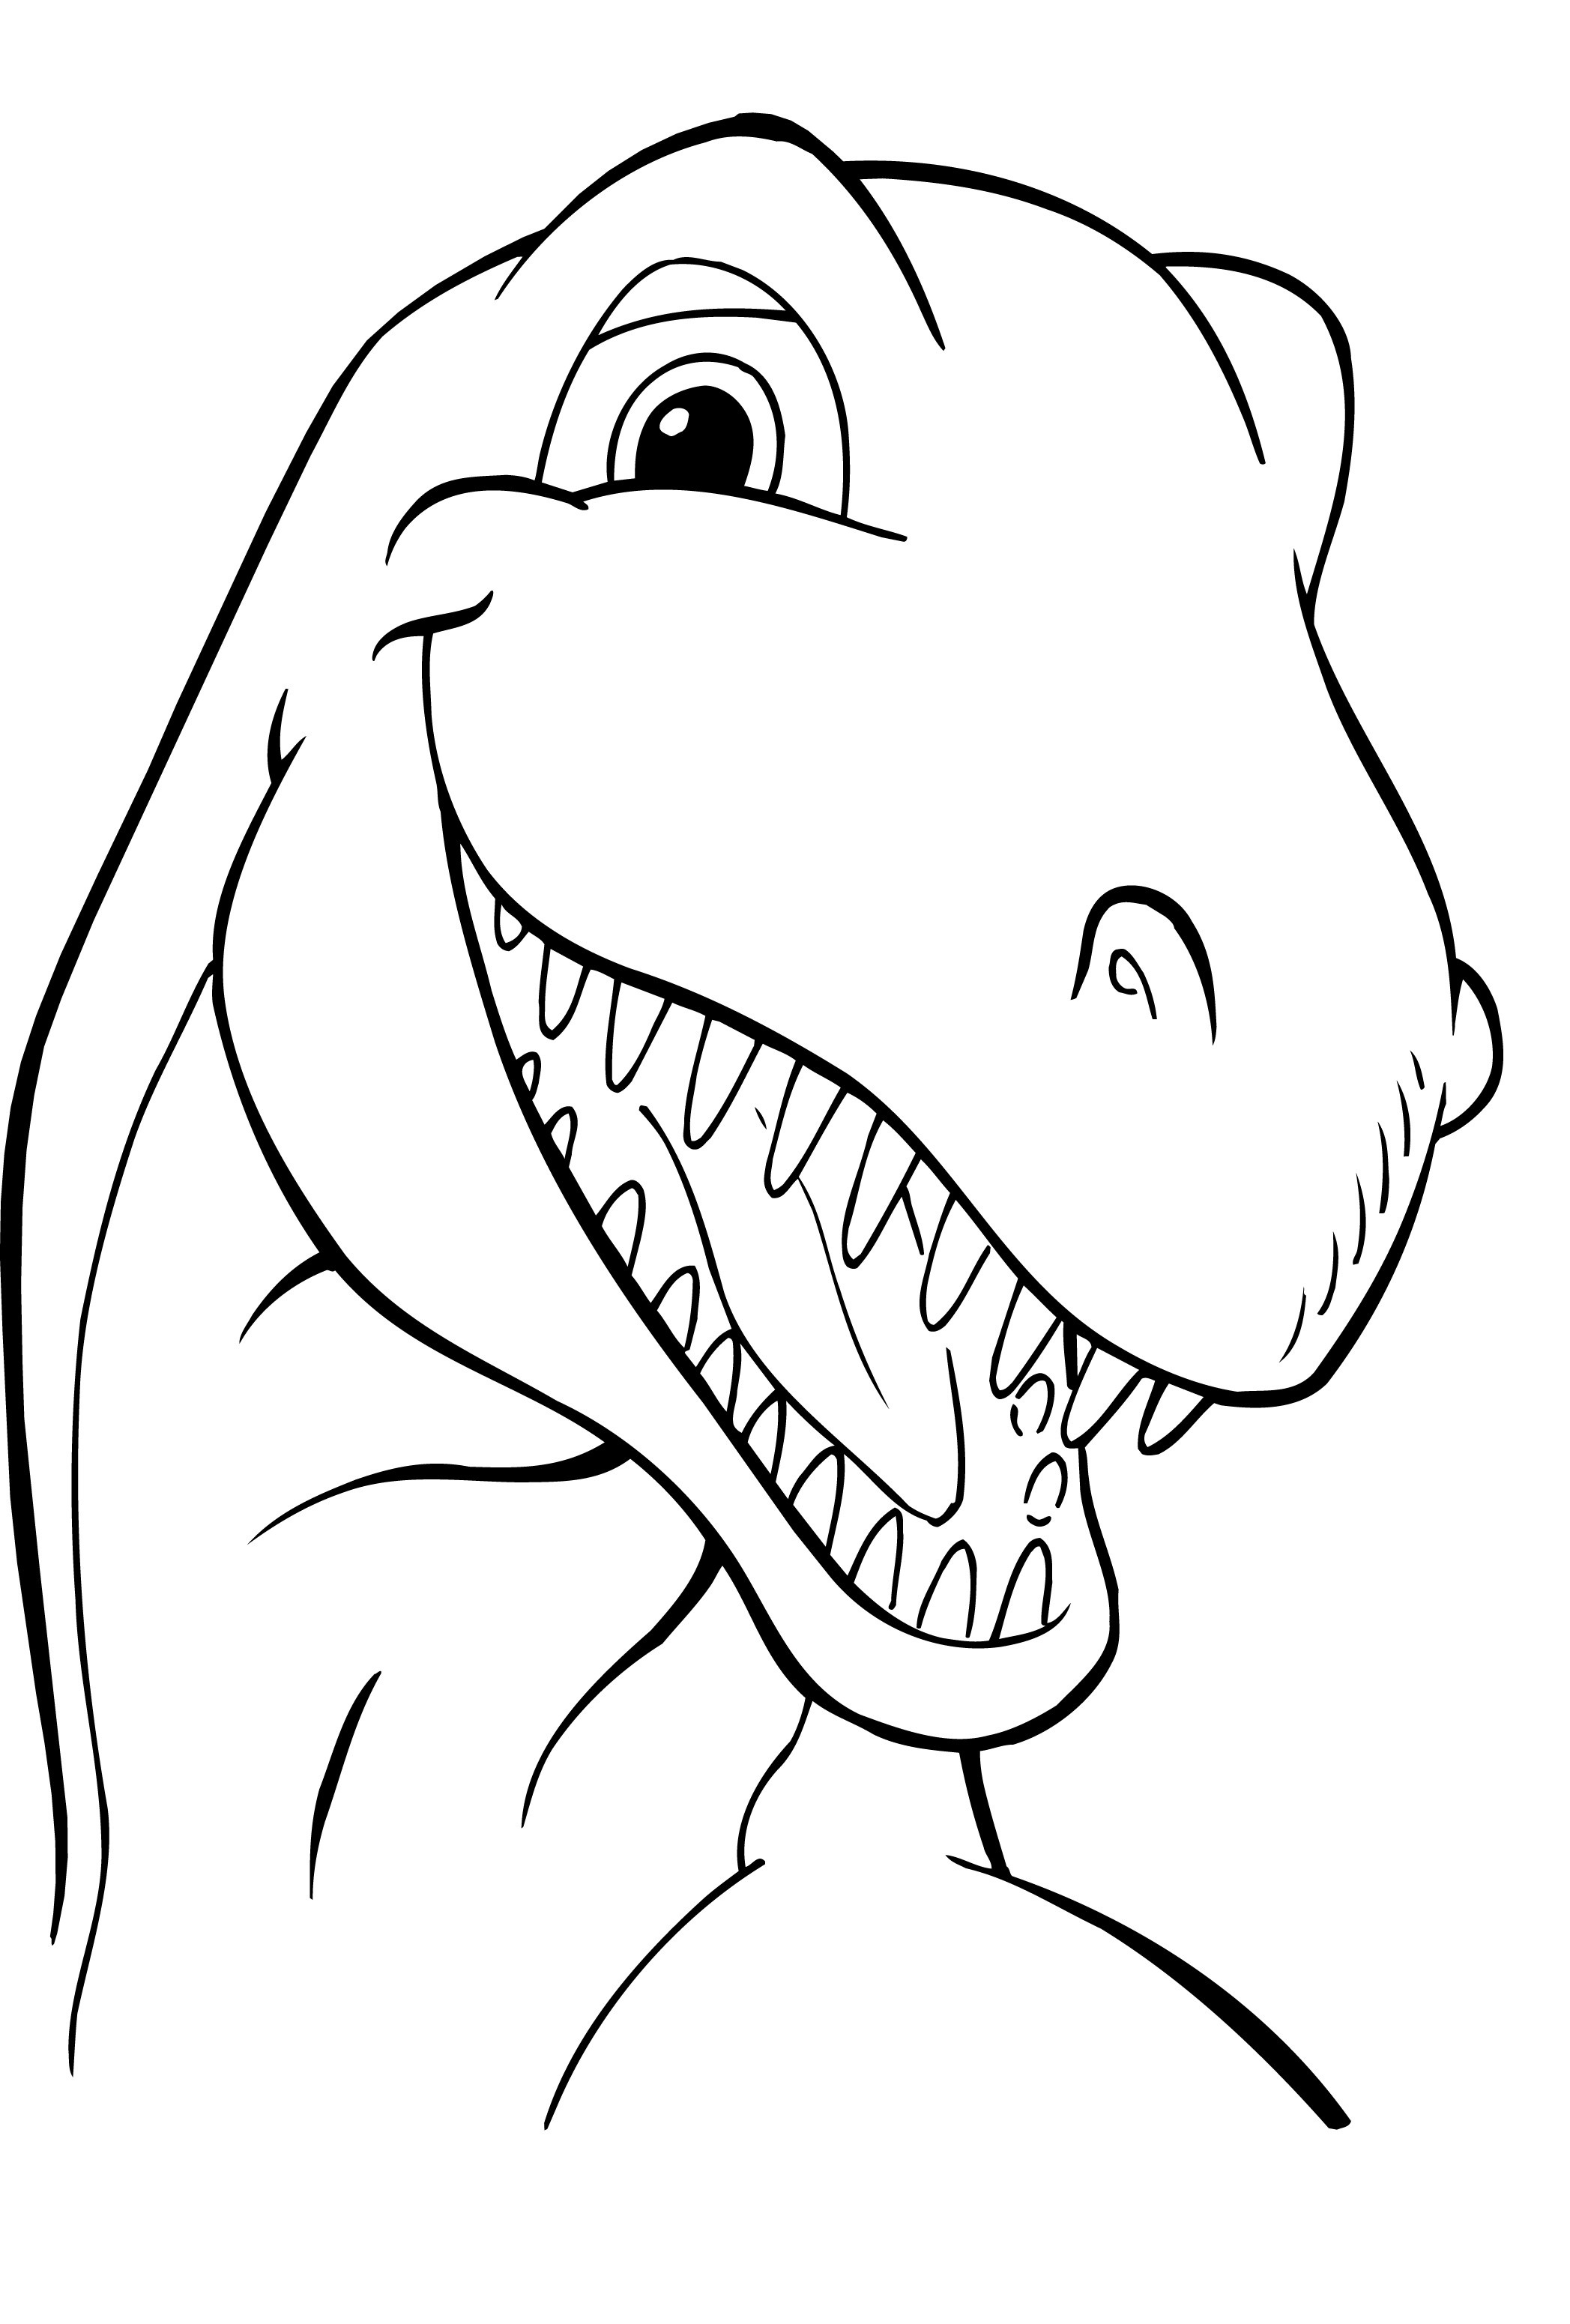 dinosaur coloring pages for kids 42 free dinosaur coloring pages coloringpages234 coloring dinosaur for pages kids